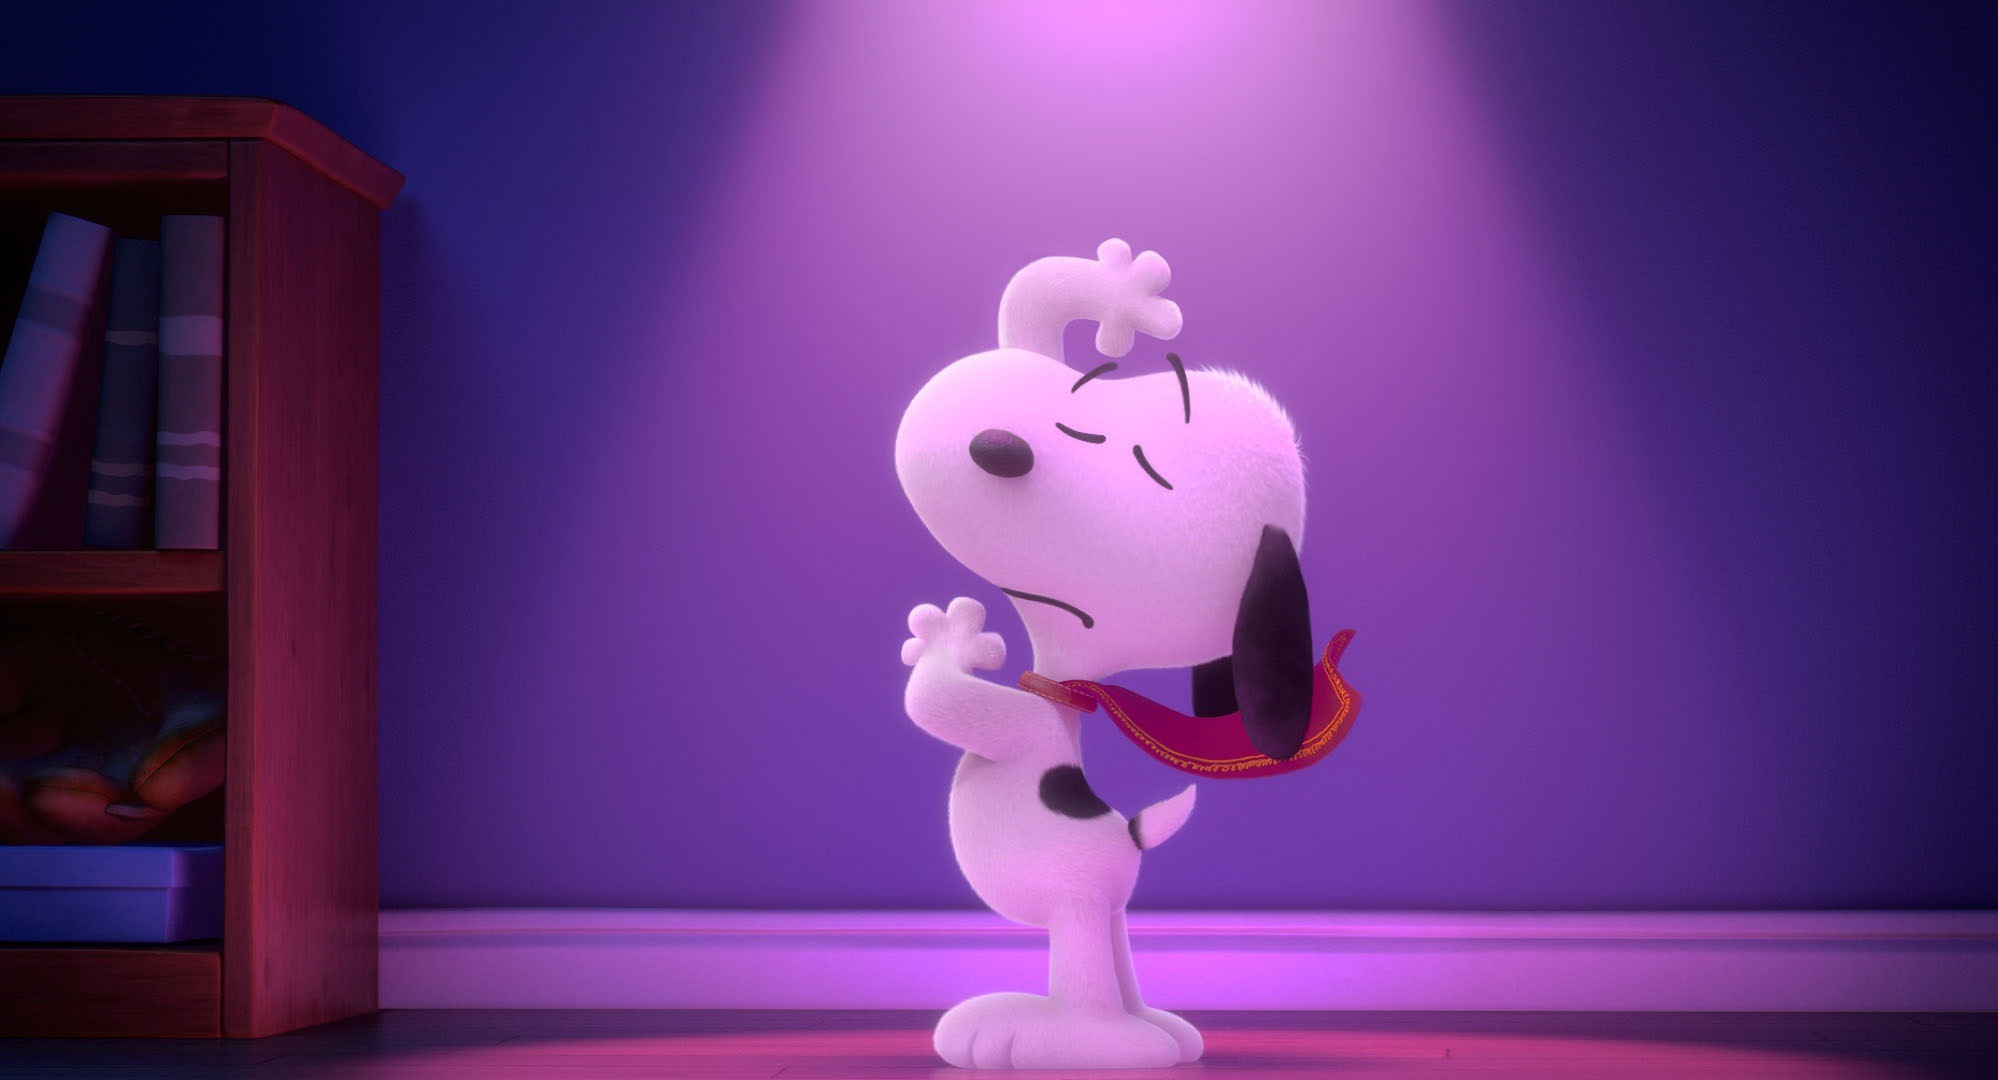 1998x1080 ( px) - Snoopy Wallpapers, Sunny Bischof